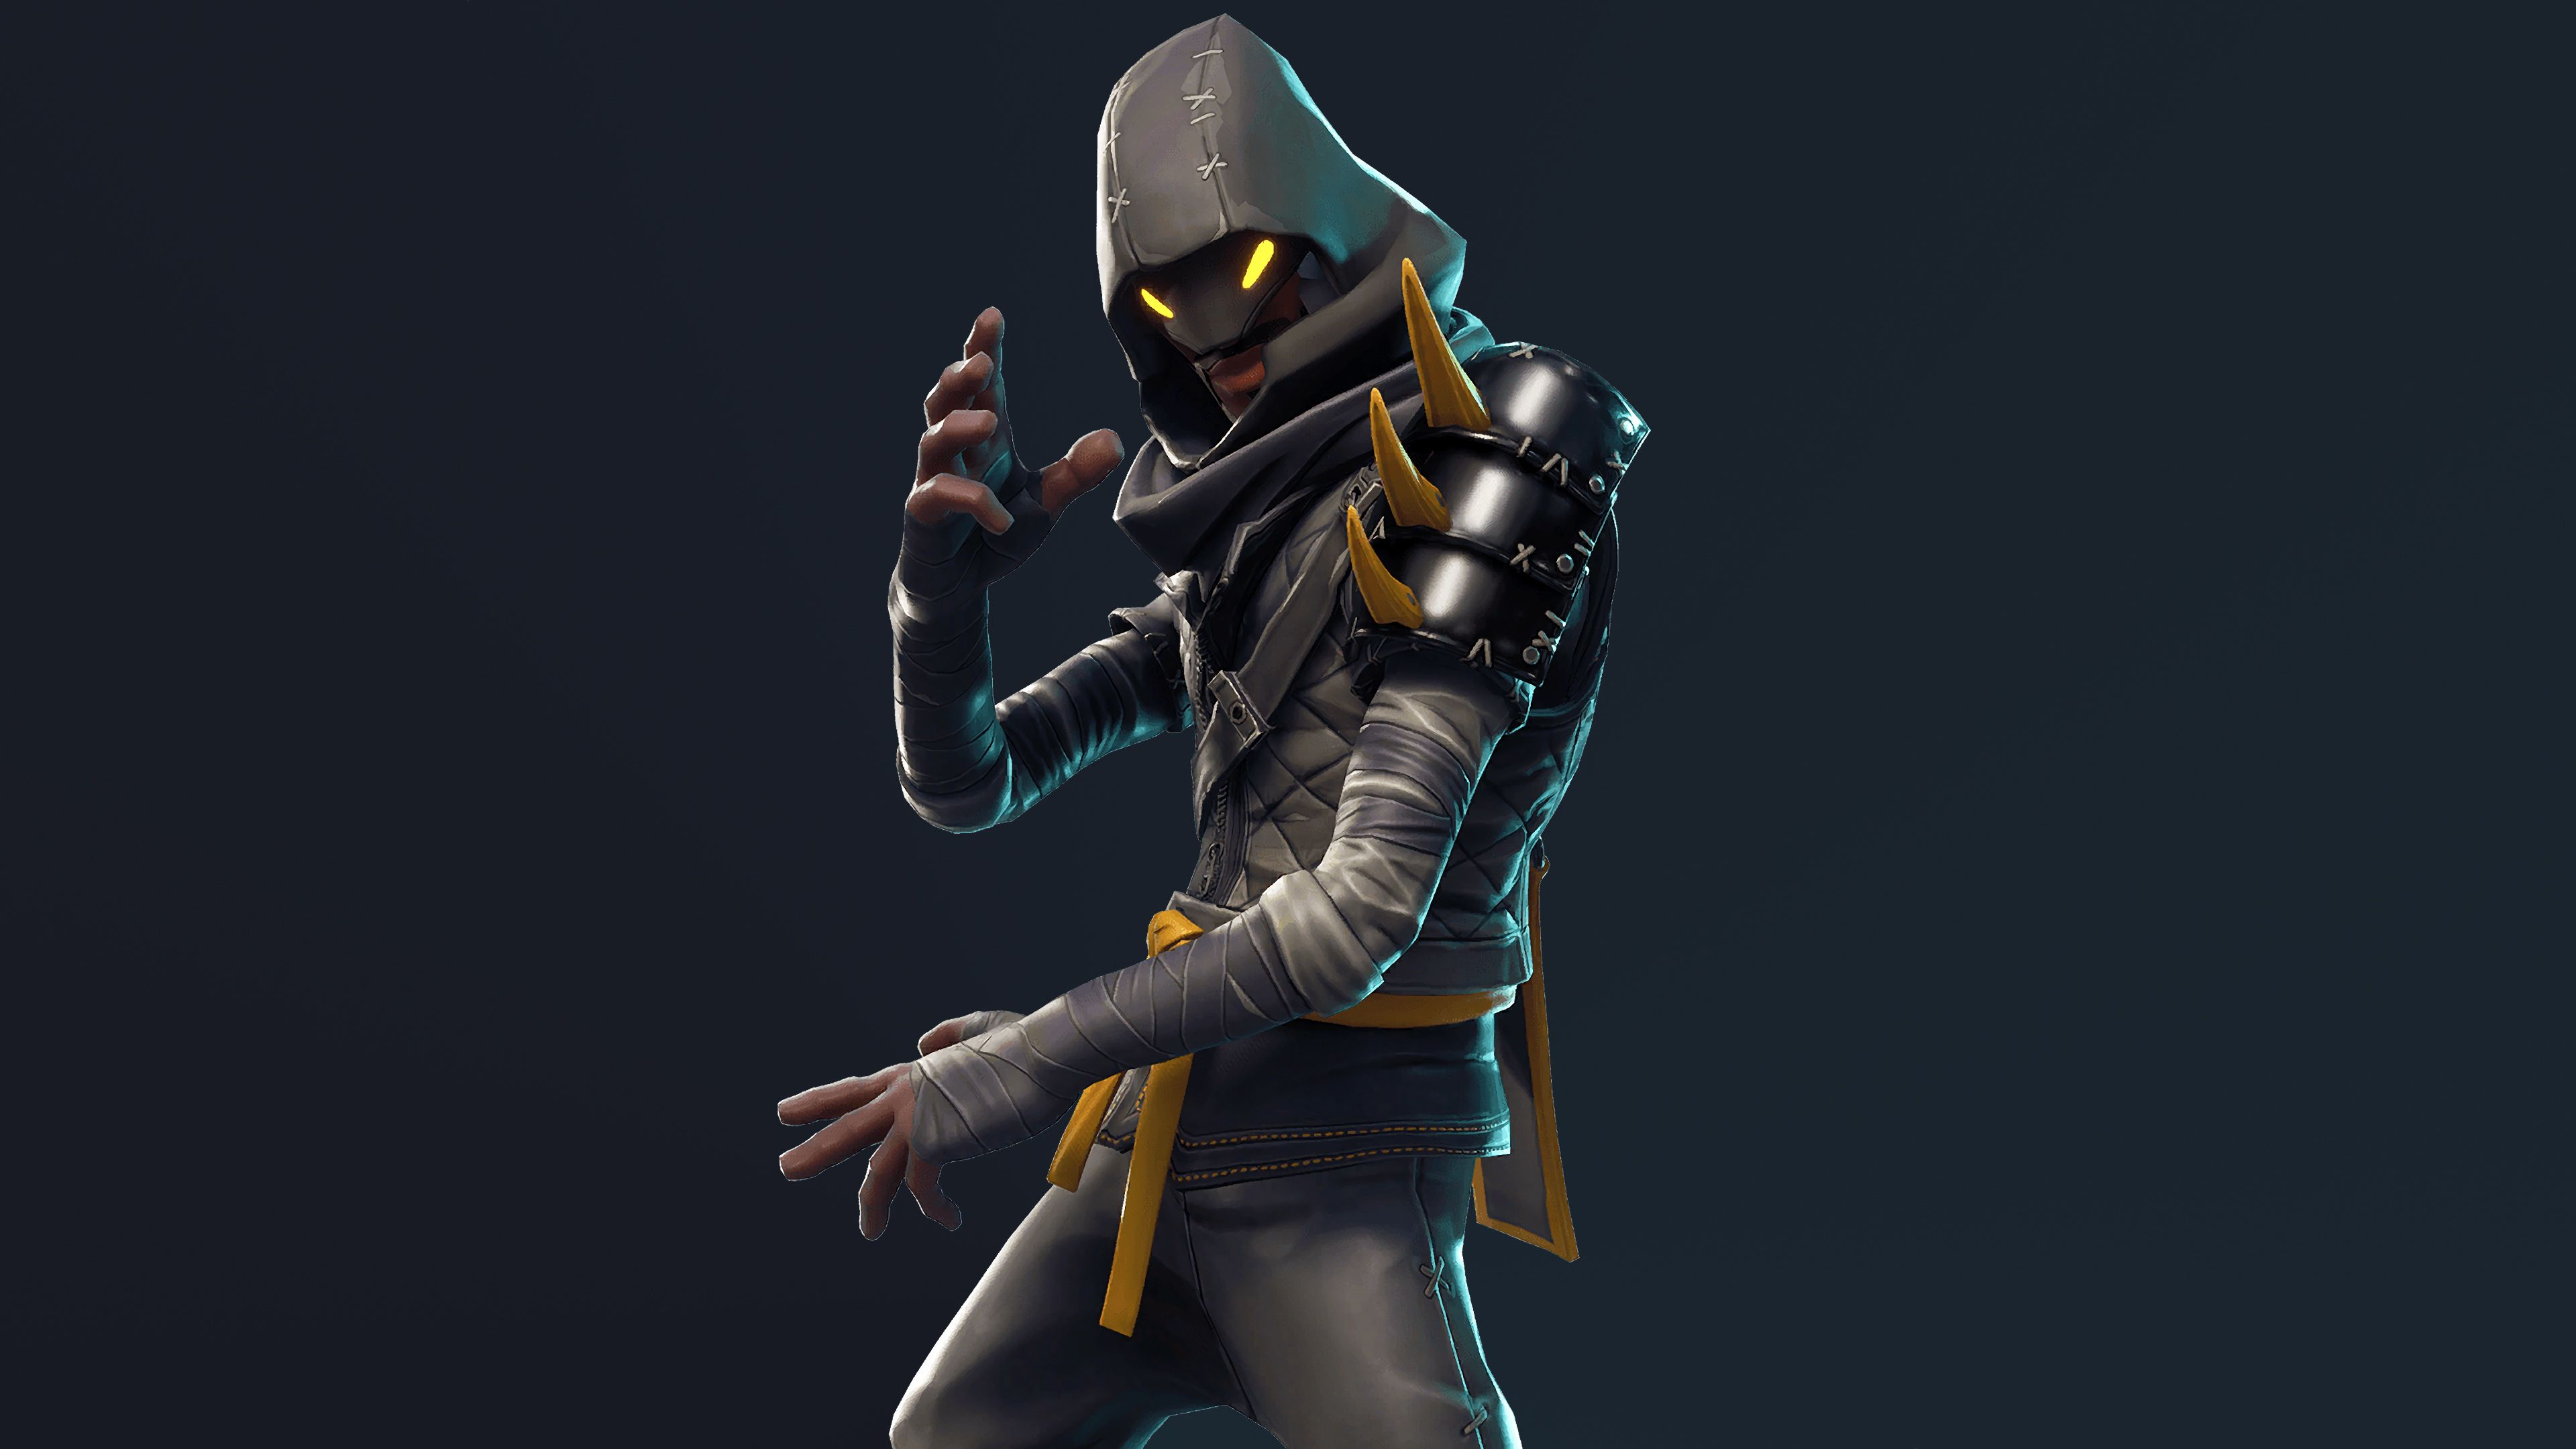 Wallpaper 4k Cloaked Star Ninja Fortnite Battle Royale 2018 Games